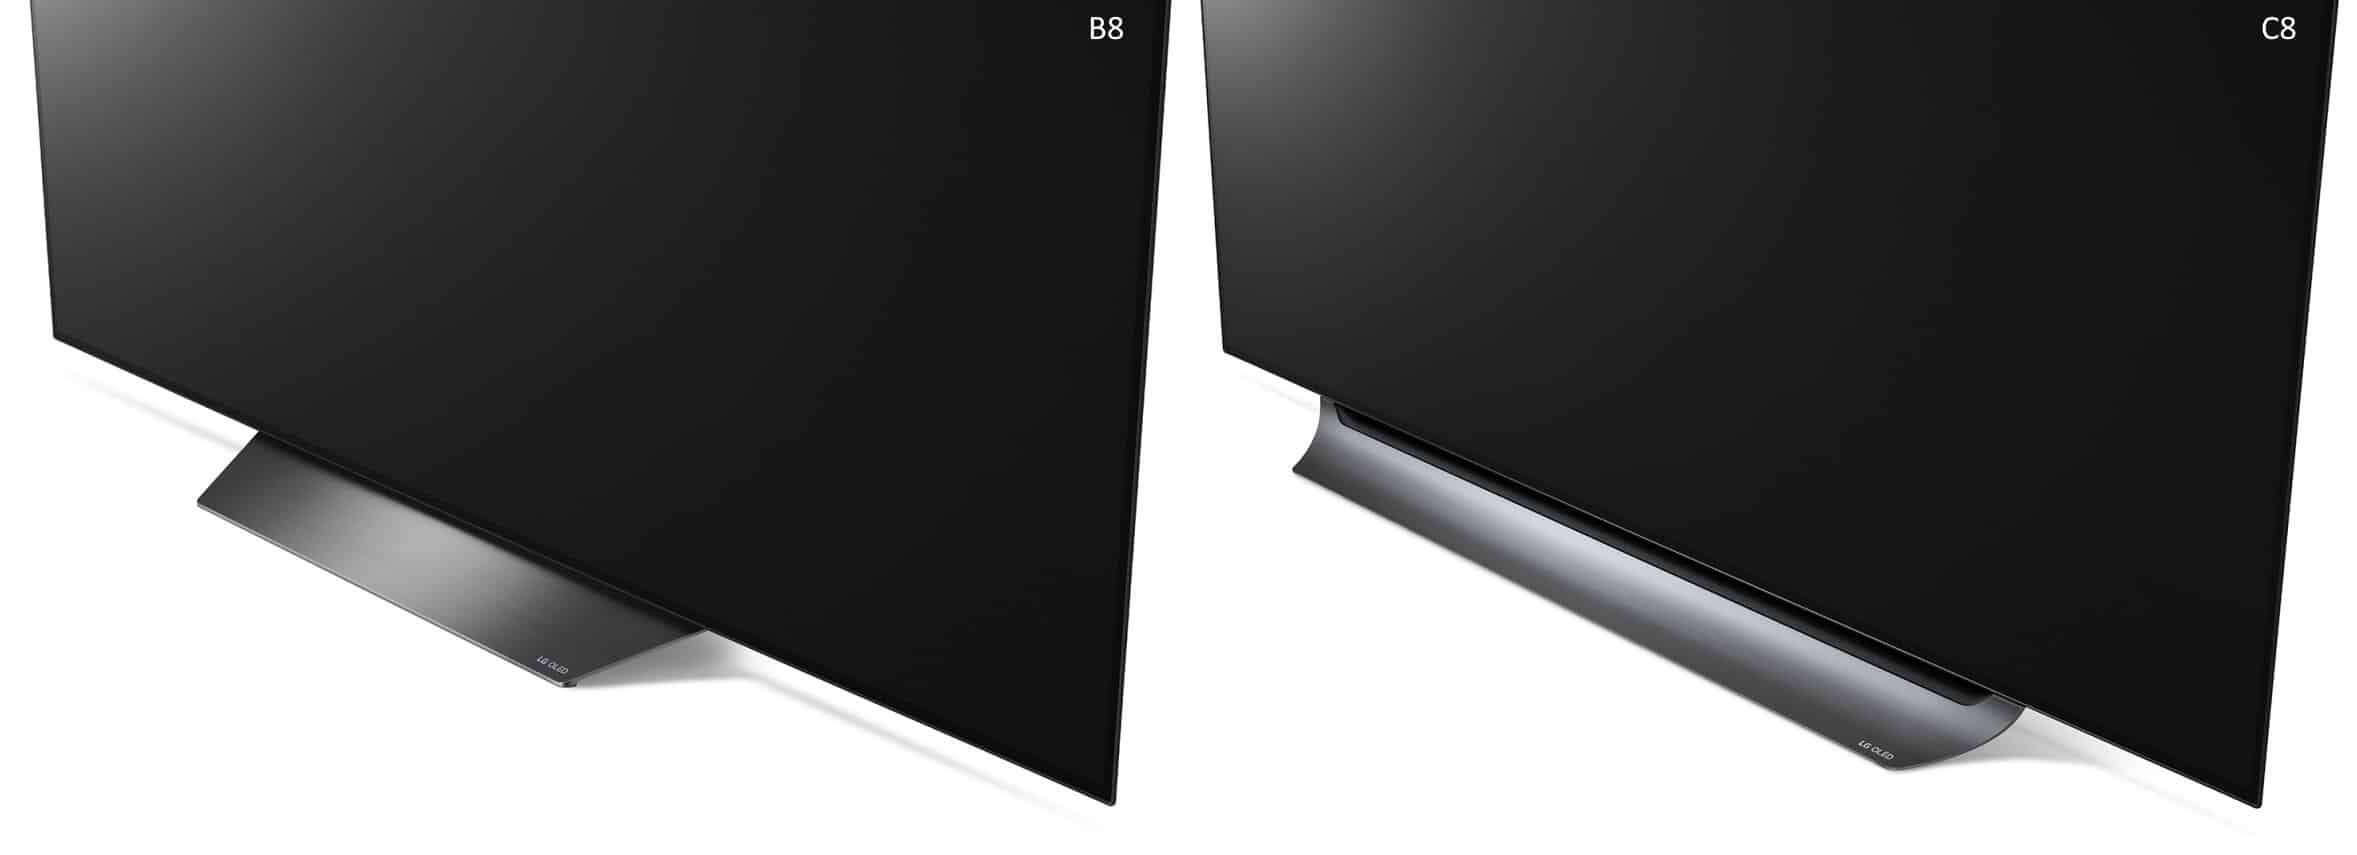 LG OLED B8 vs C8 difference 2018 oled 4k tv stand